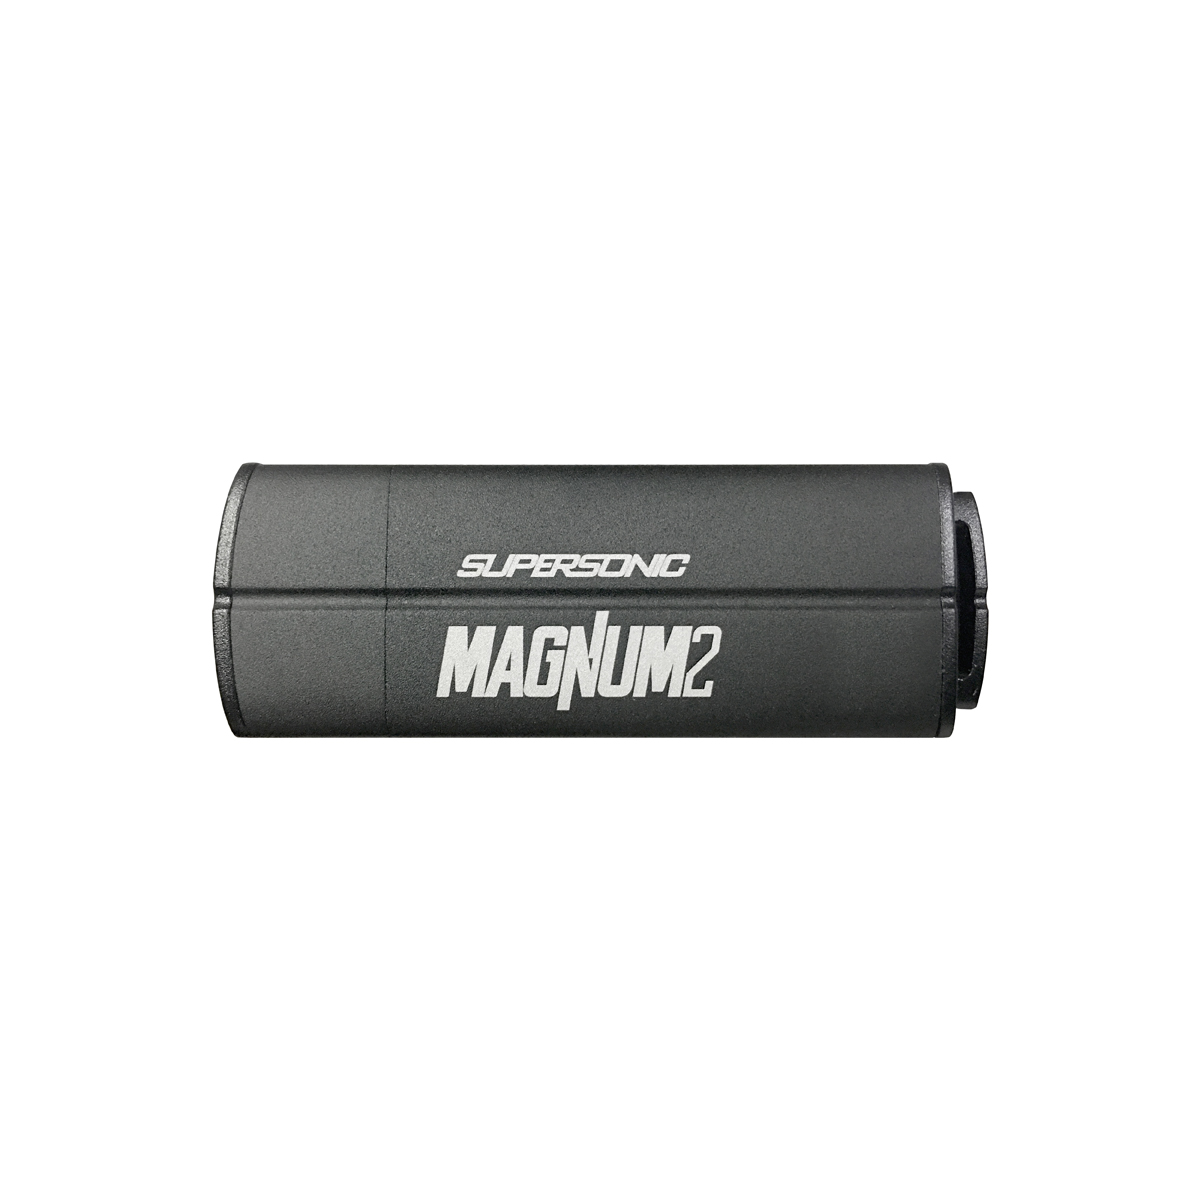 Flash disk Patriot Supersonic Magnum 2 256GB USB 3.0